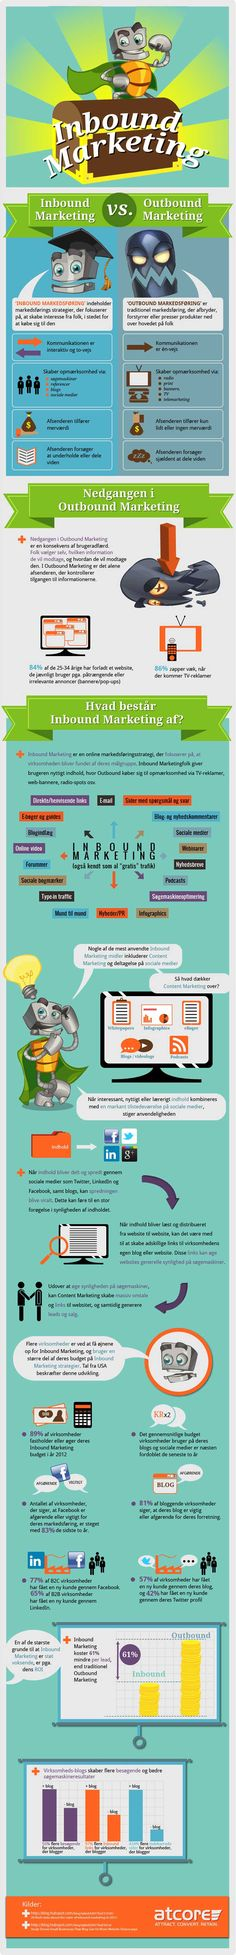 Infographic: Inbound vs. Outbound Marketing https://www.udemy.com/inbound-marketing/?couponCode=pinterestoff